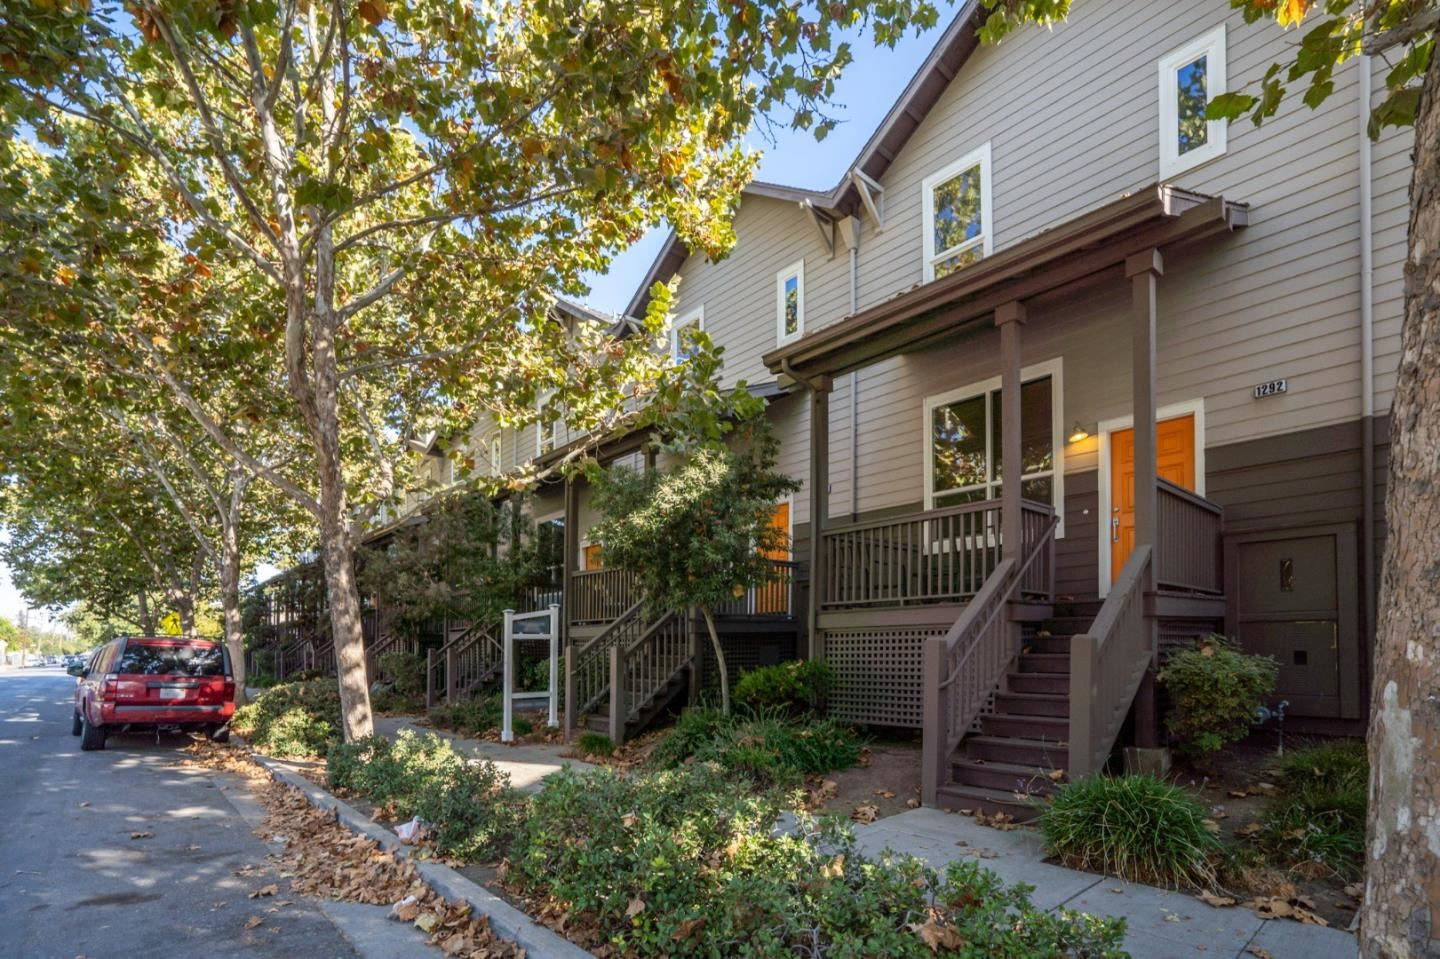 Photo for 1288 Lick AVE, SAN JOSE, CA 95110 (MLS # ML81816168)